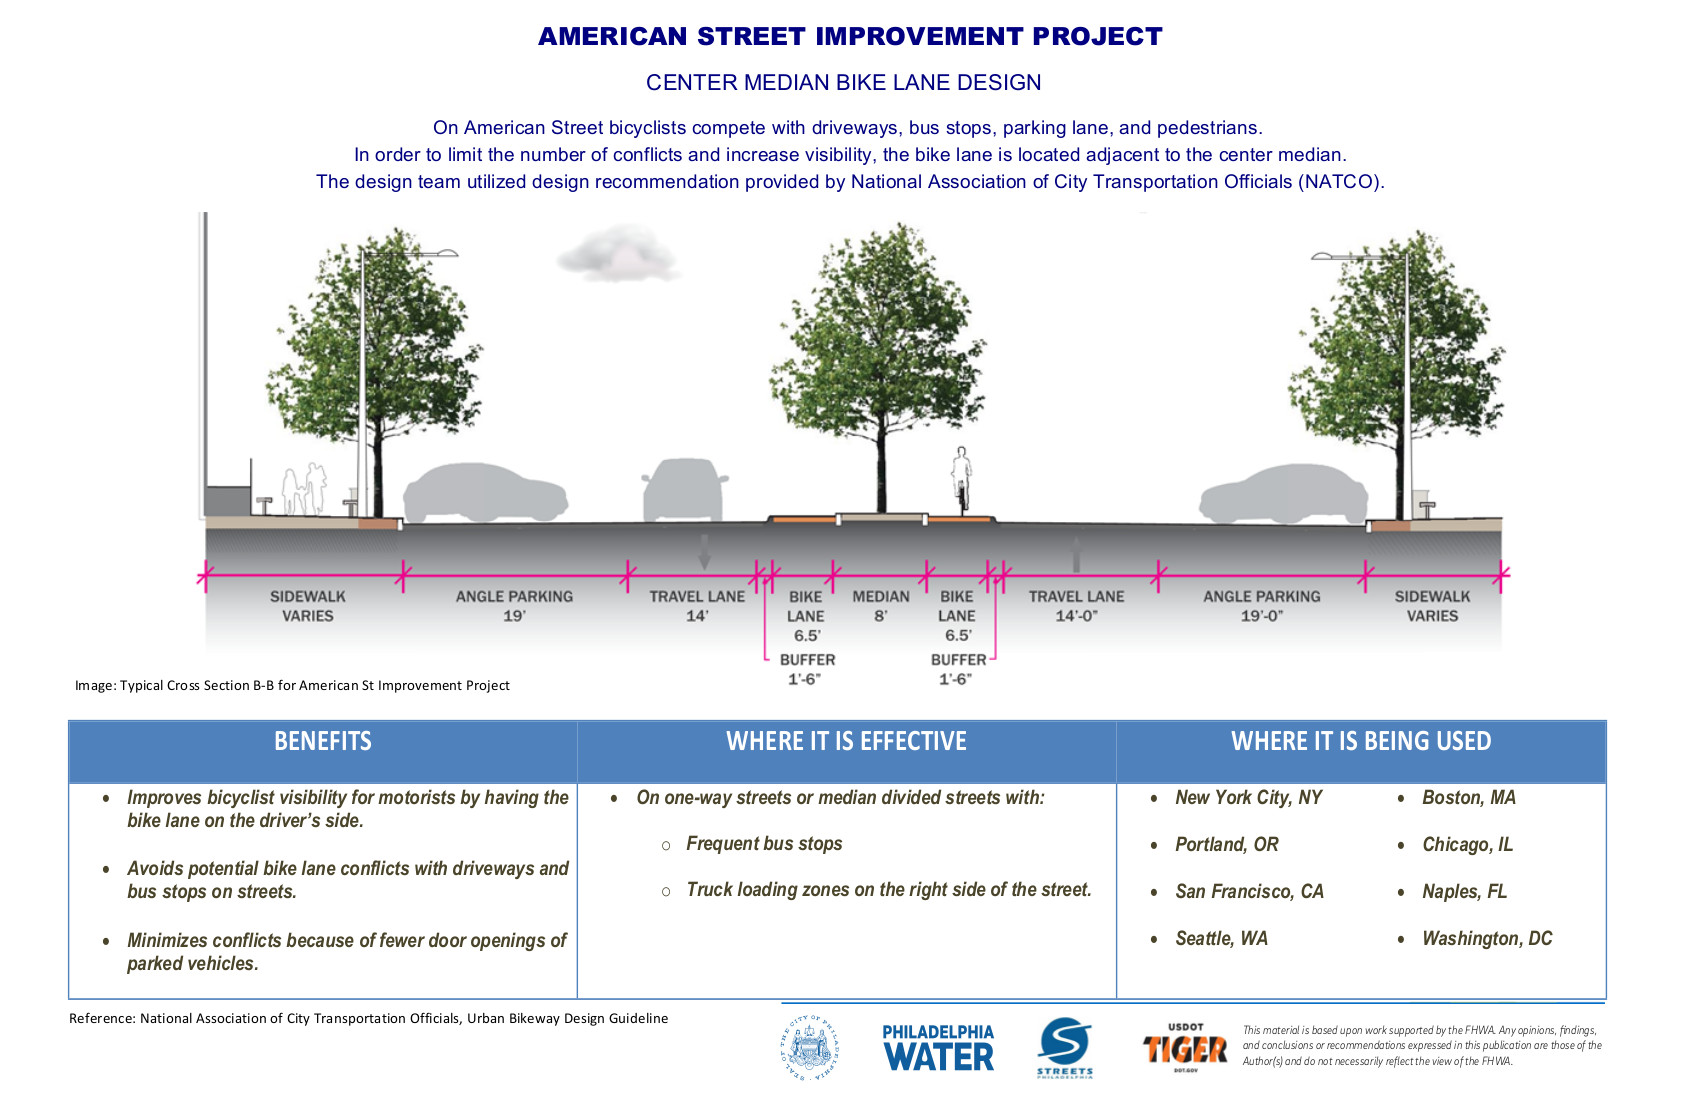 Project Background - American Street Improvement Project